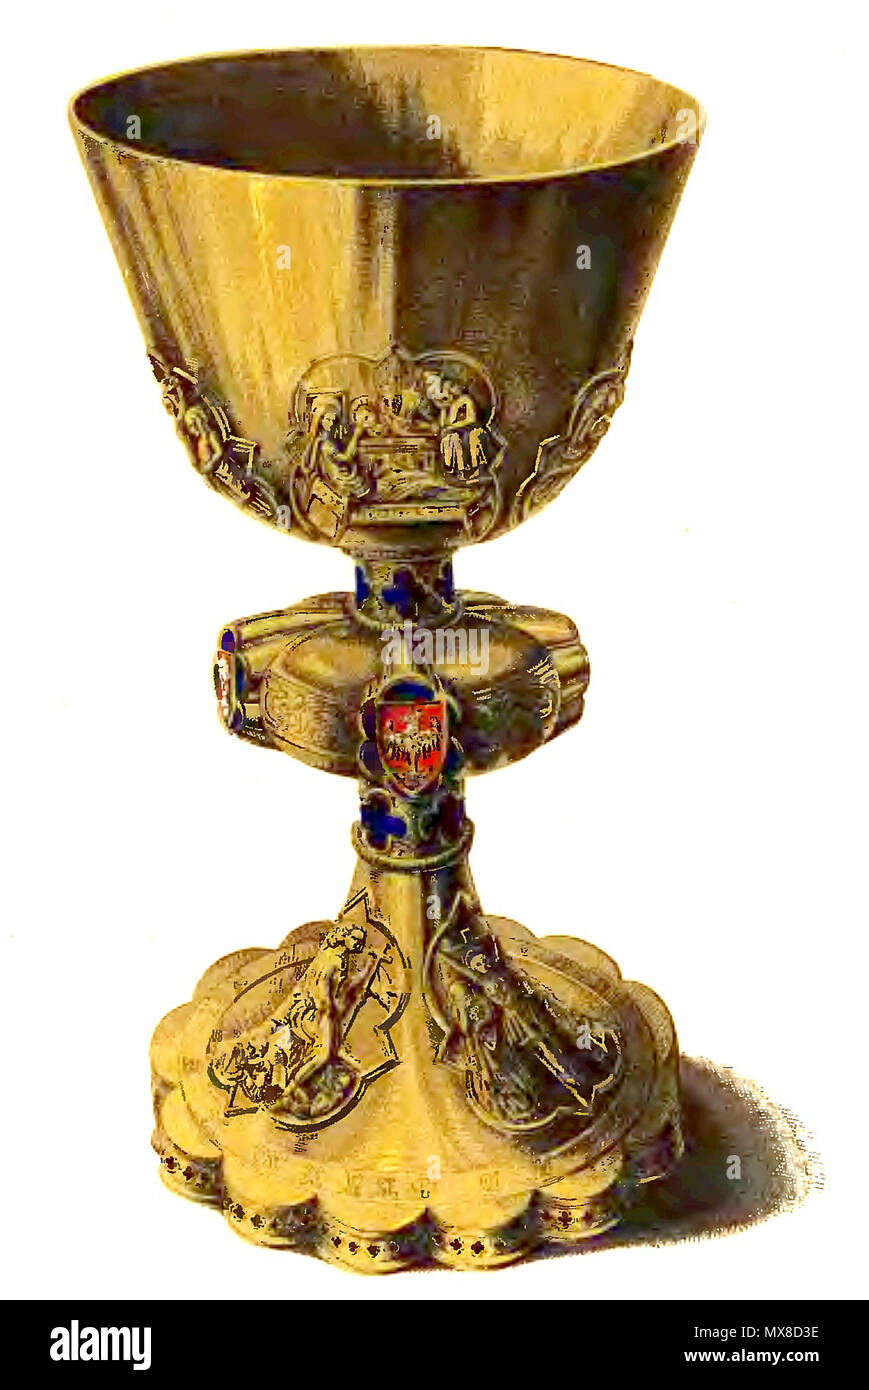 . Stopnica chalice f XIV century founded by Casimir III of Poland . 19th century. Maksymilian Fajans 172 Dtopnica chalice - Stock Image